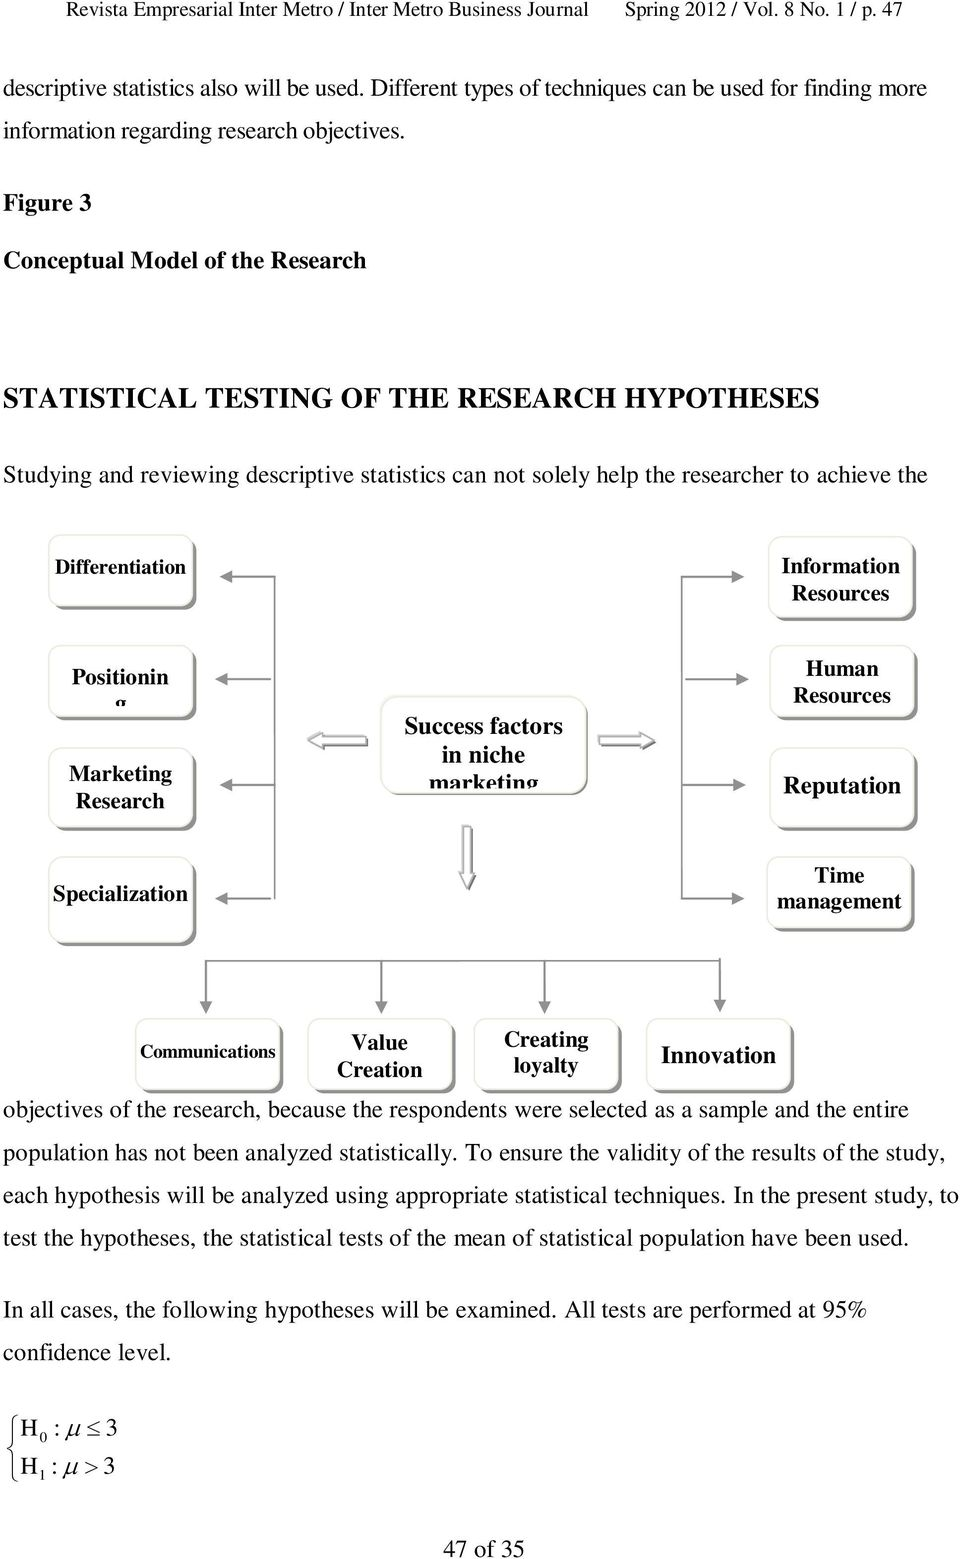 Figure 3 Conceptual Model of the Research STATISTICAL TESTING OF THE RESEARCH HYPOTHESES Studying and reviewing descriptive s can not solely help the researcher to achieve the Differentiation